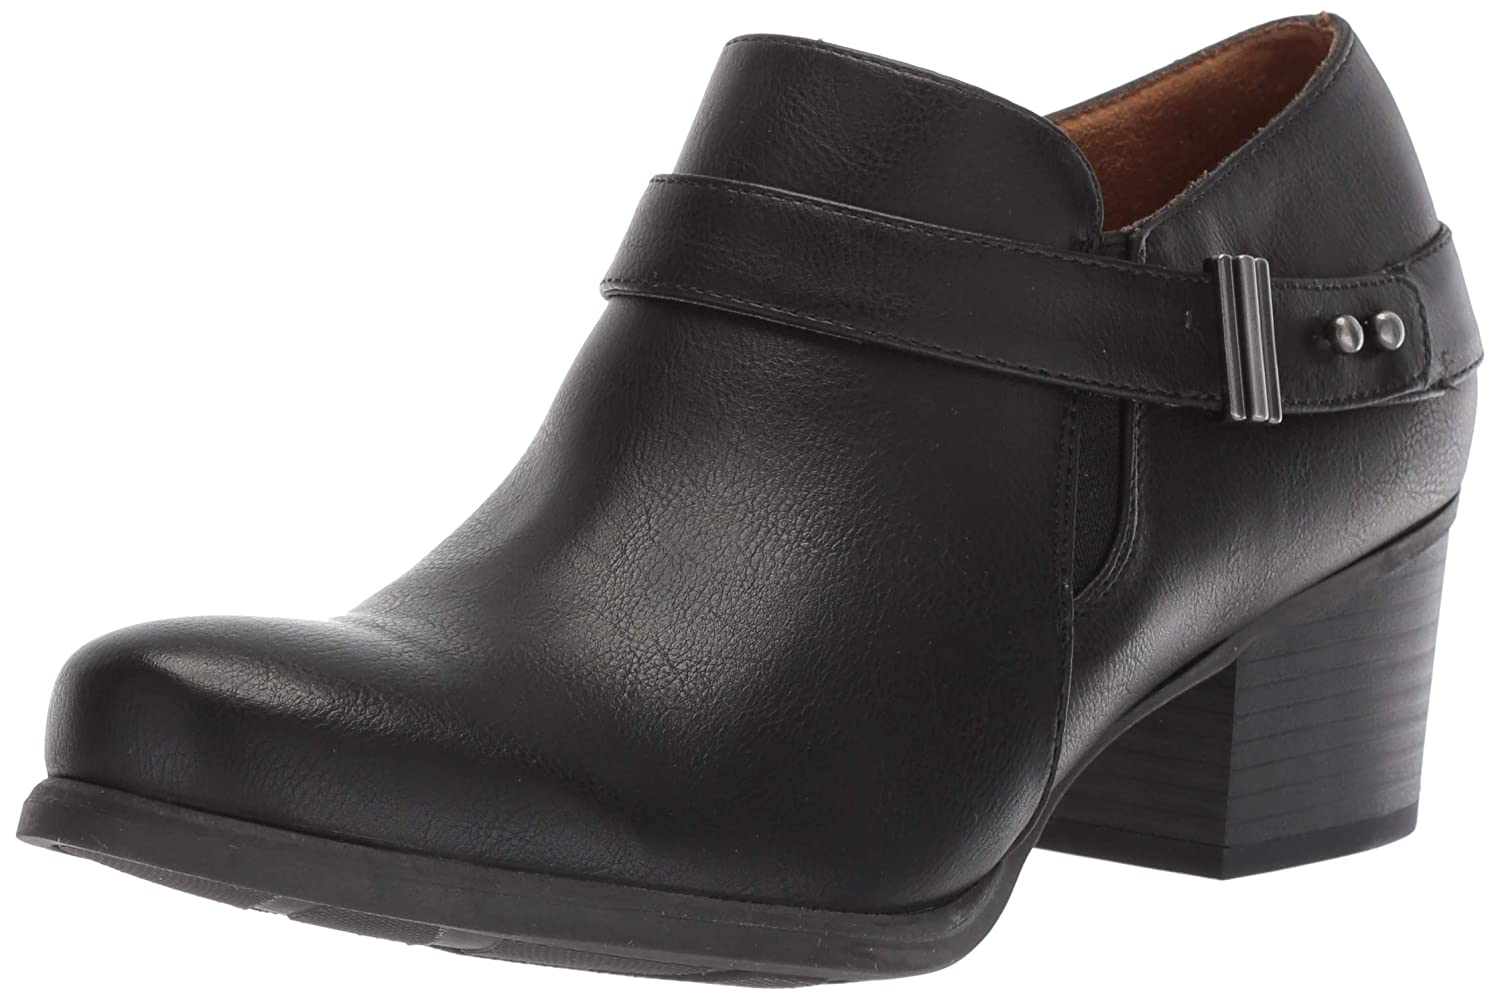 - SOUL Naturalizer Women's CHAYLEE Ankle Boot Black 7.5 W US